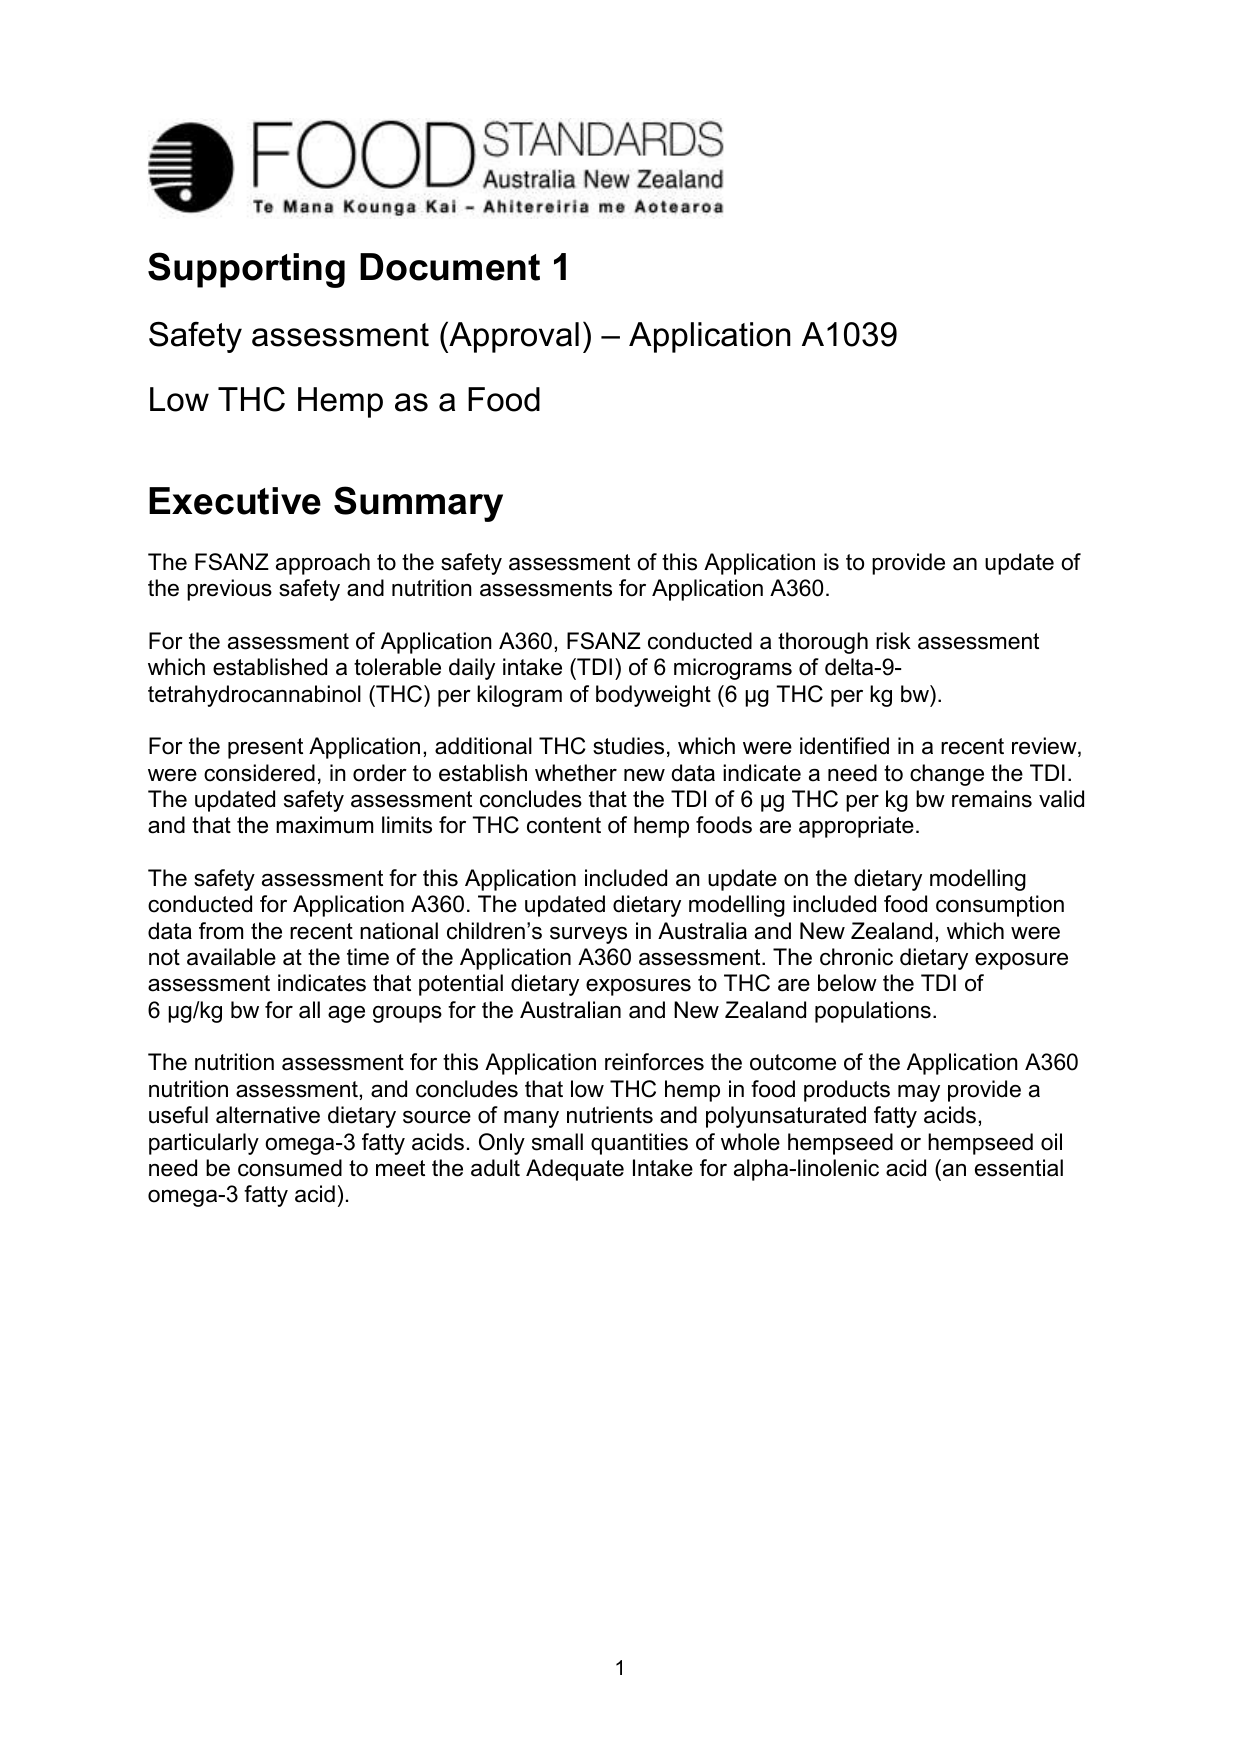 Supporting Document 1 - Food Standards